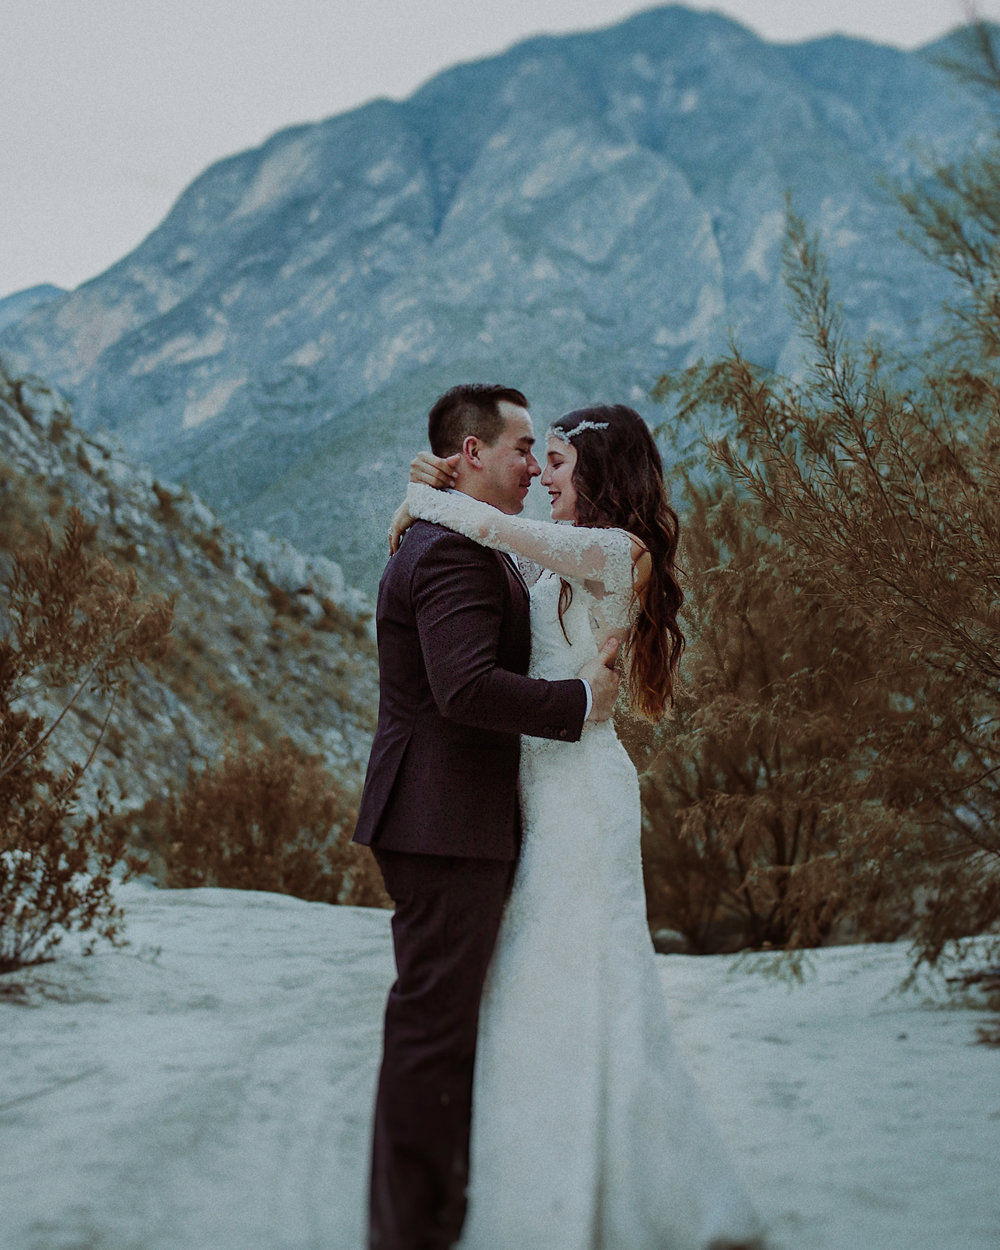 Destination wedding photographer based in mexico